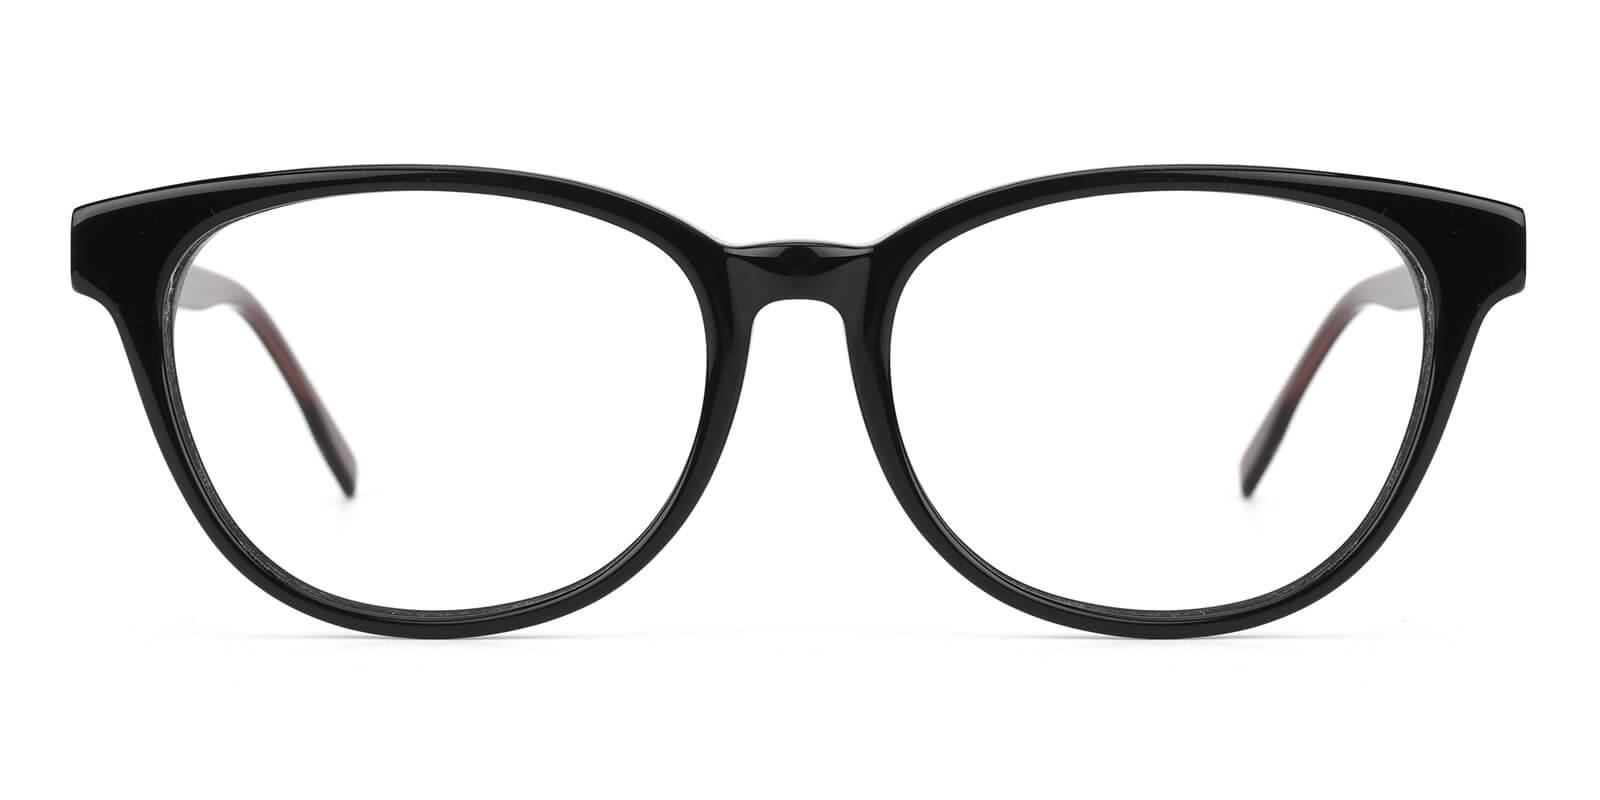 Zona-Black-Cat-Acetate-Eyeglasses-detail